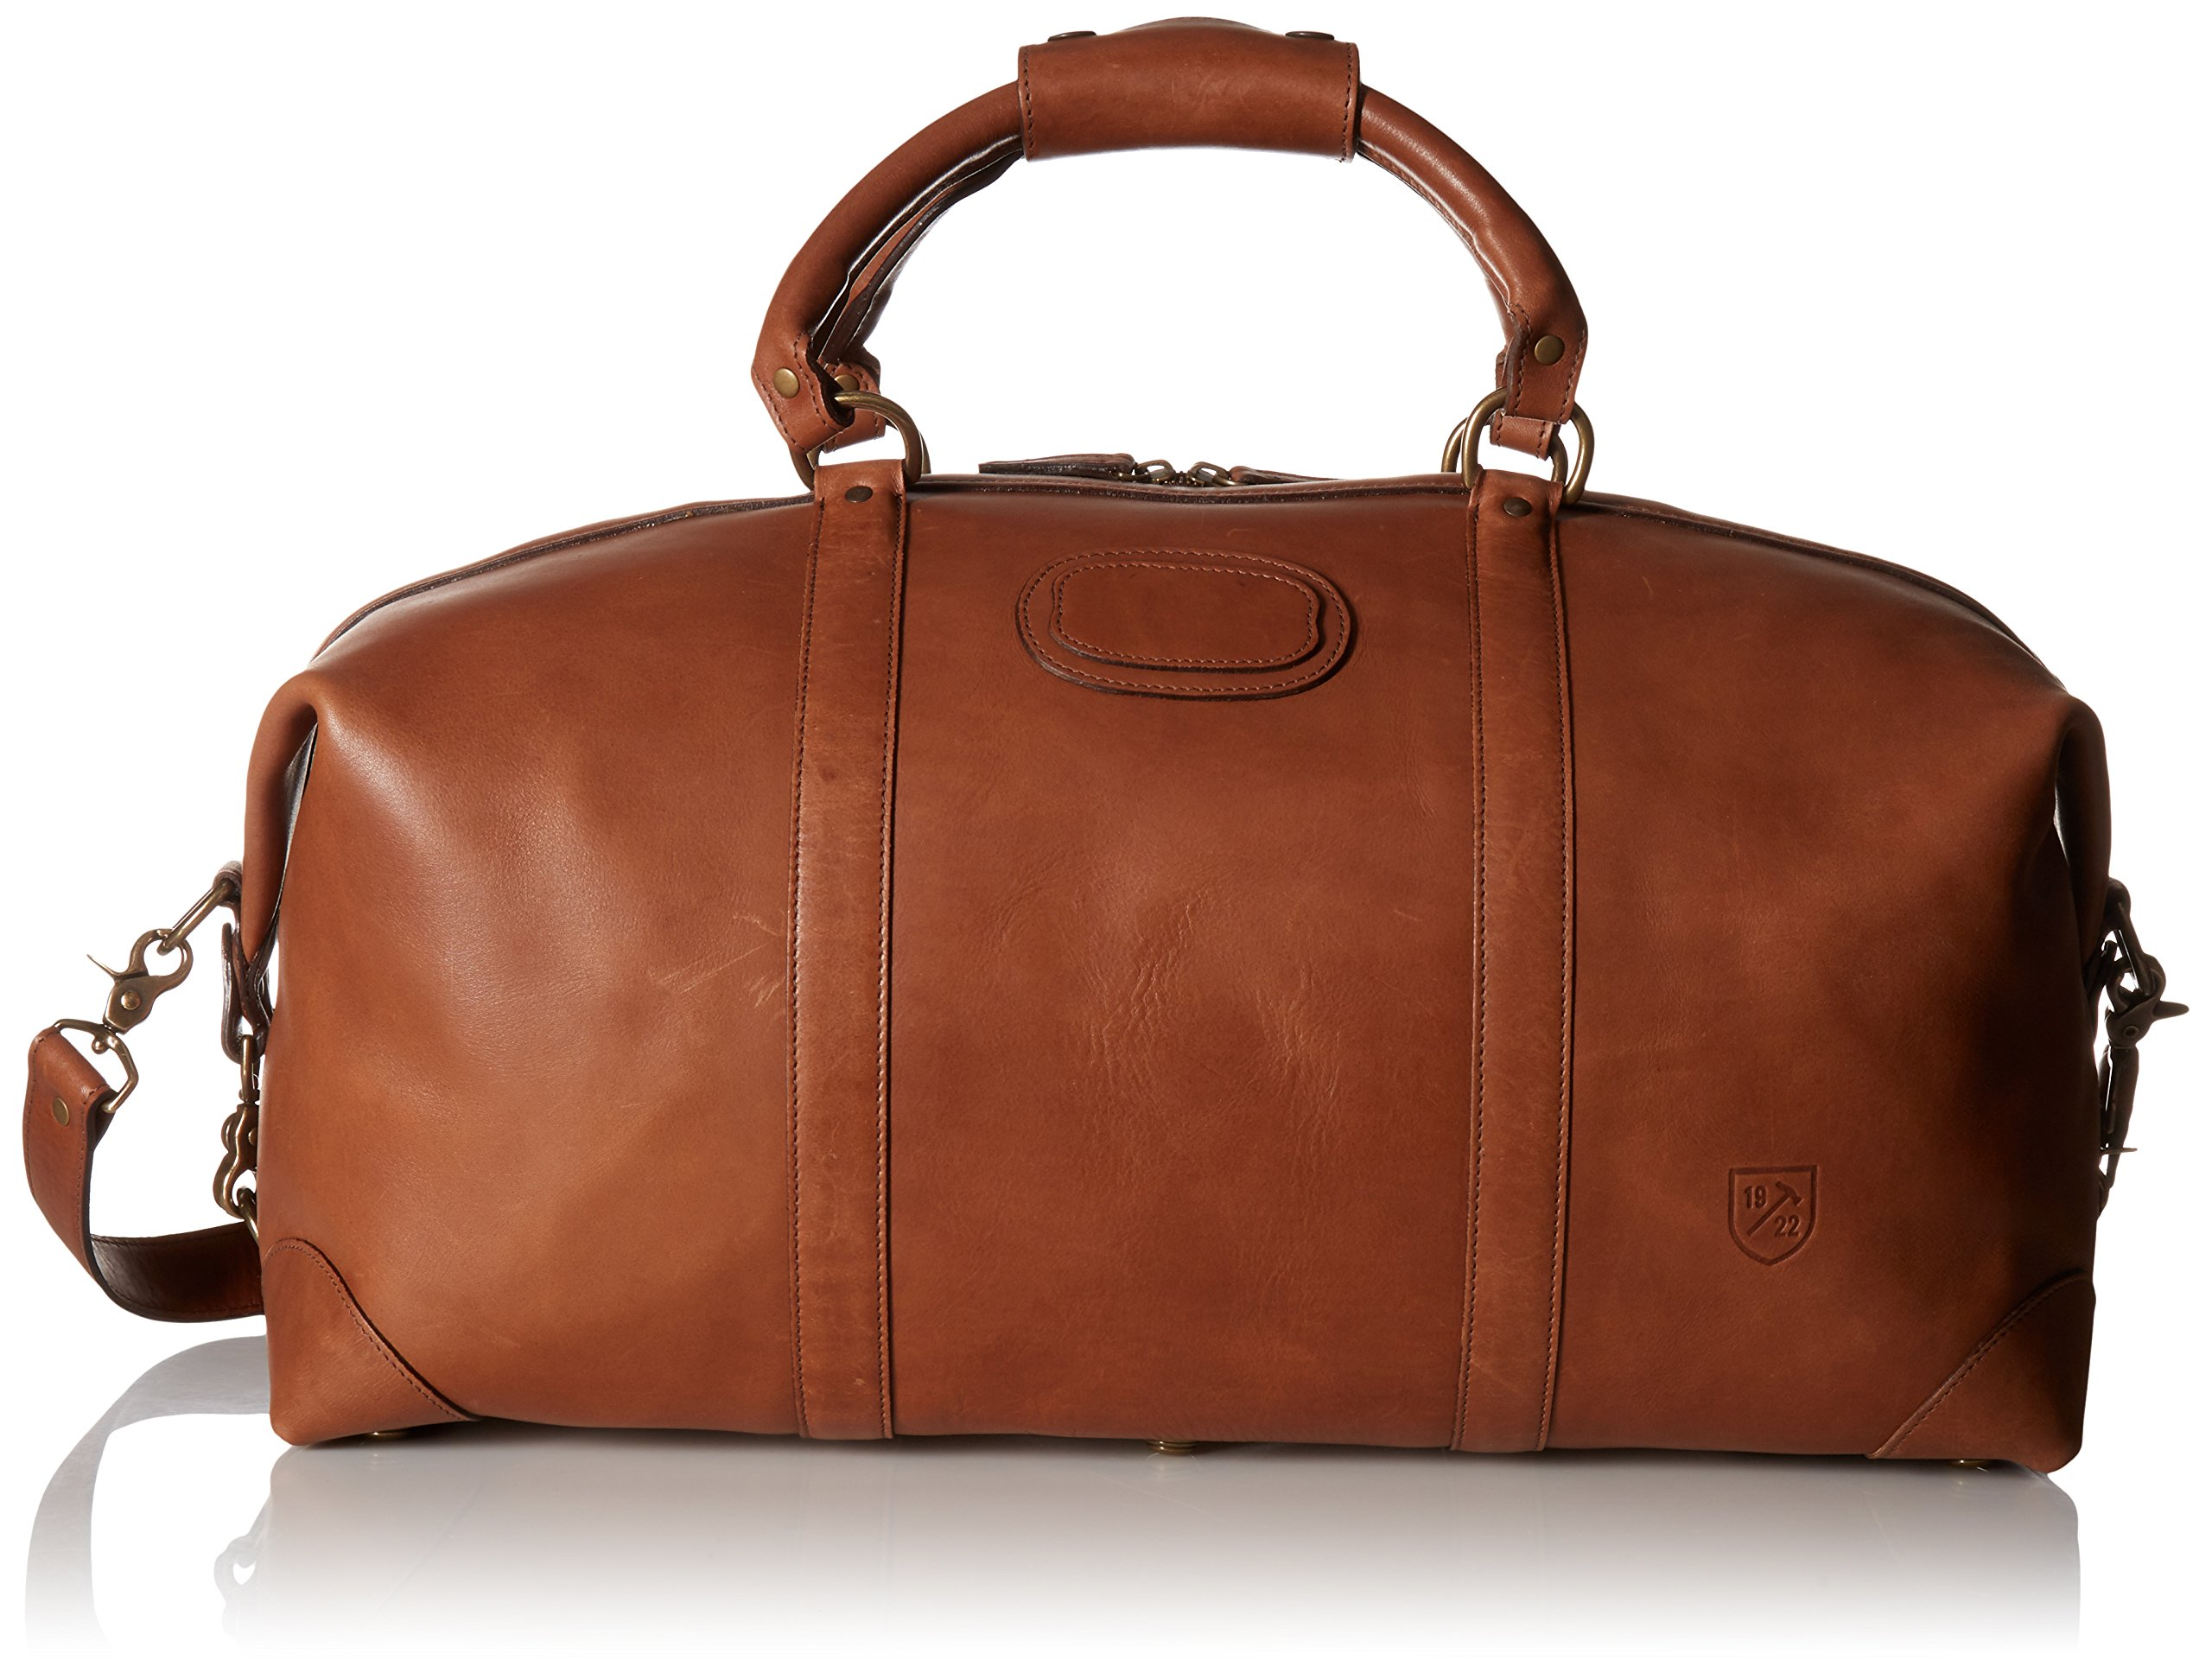 Allen Edmonds Men's Duffle Bag, Tan Saddle